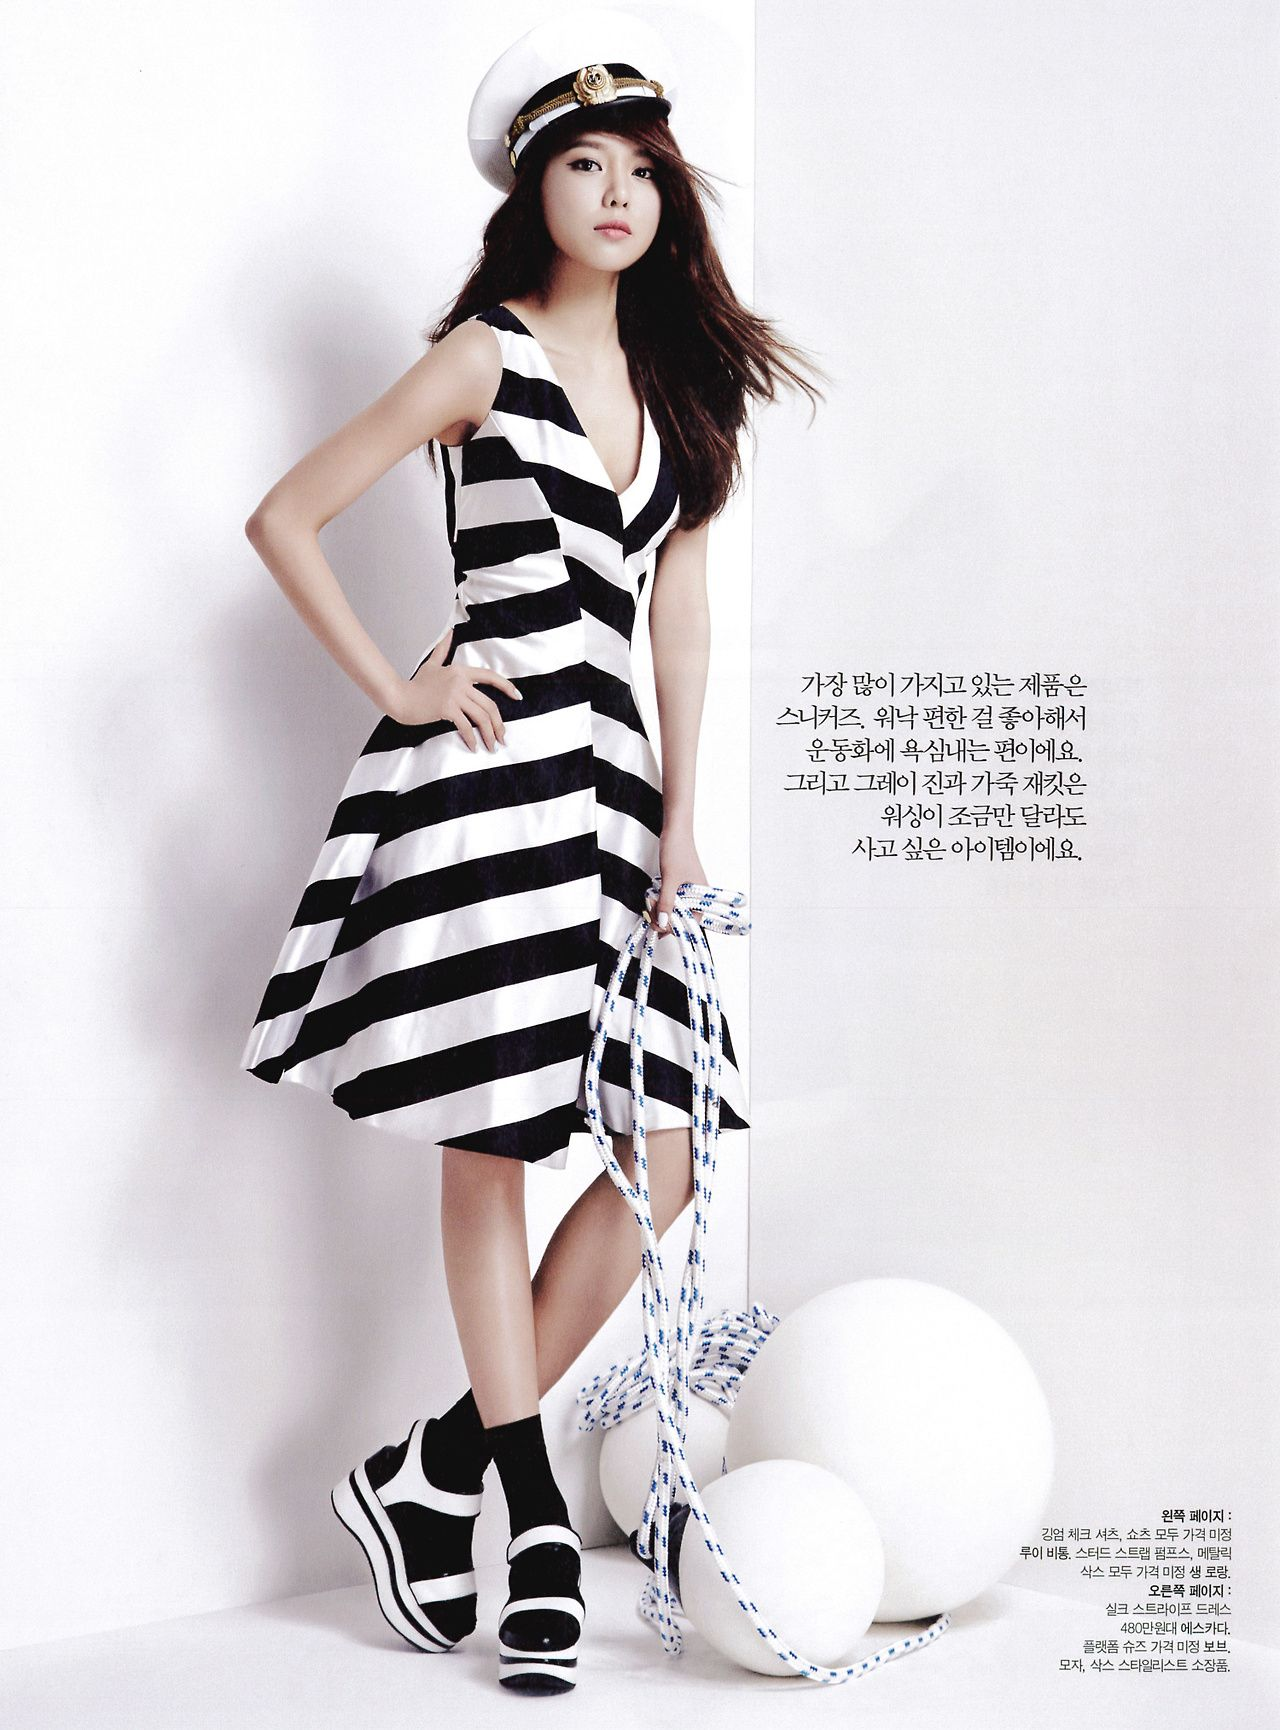 SNSD Soo Young - The Celebrity Magazine June Issue \'14 | Model Magz ...